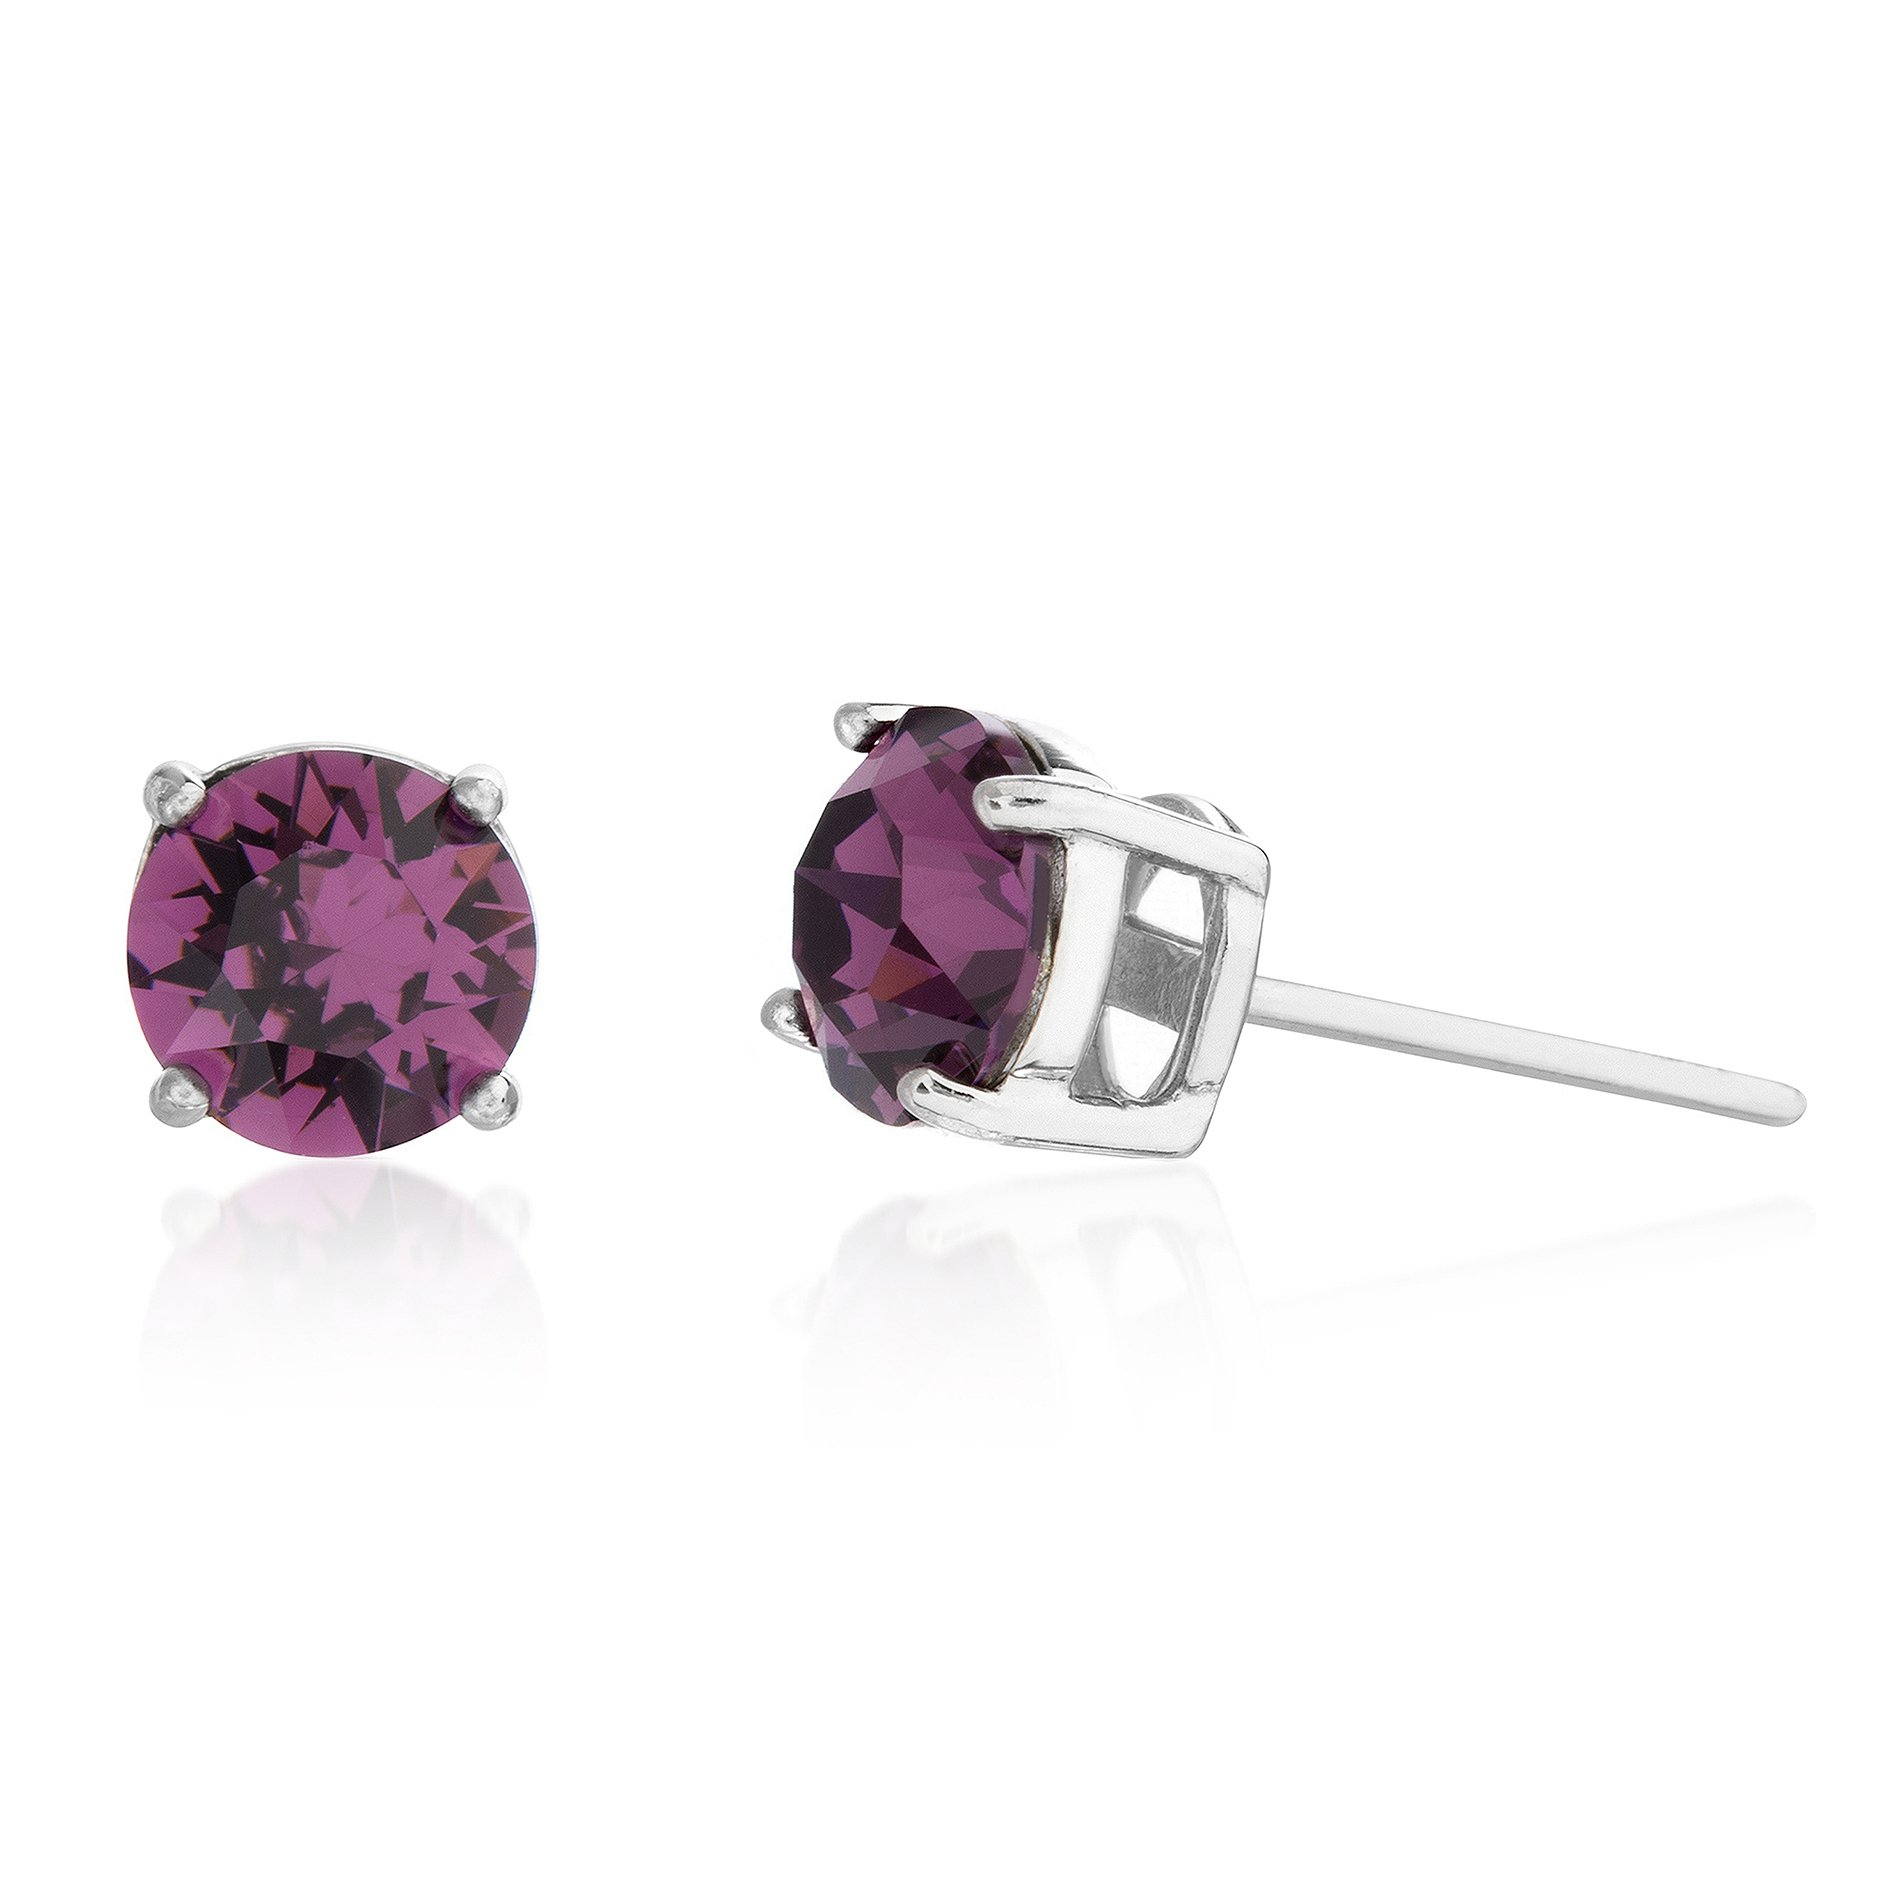 Devin Rose Sterling Silver 6mm Round Solitaire Stud Earrings for Women made with Swarovski Crystals (Various Imitation Birthstone)